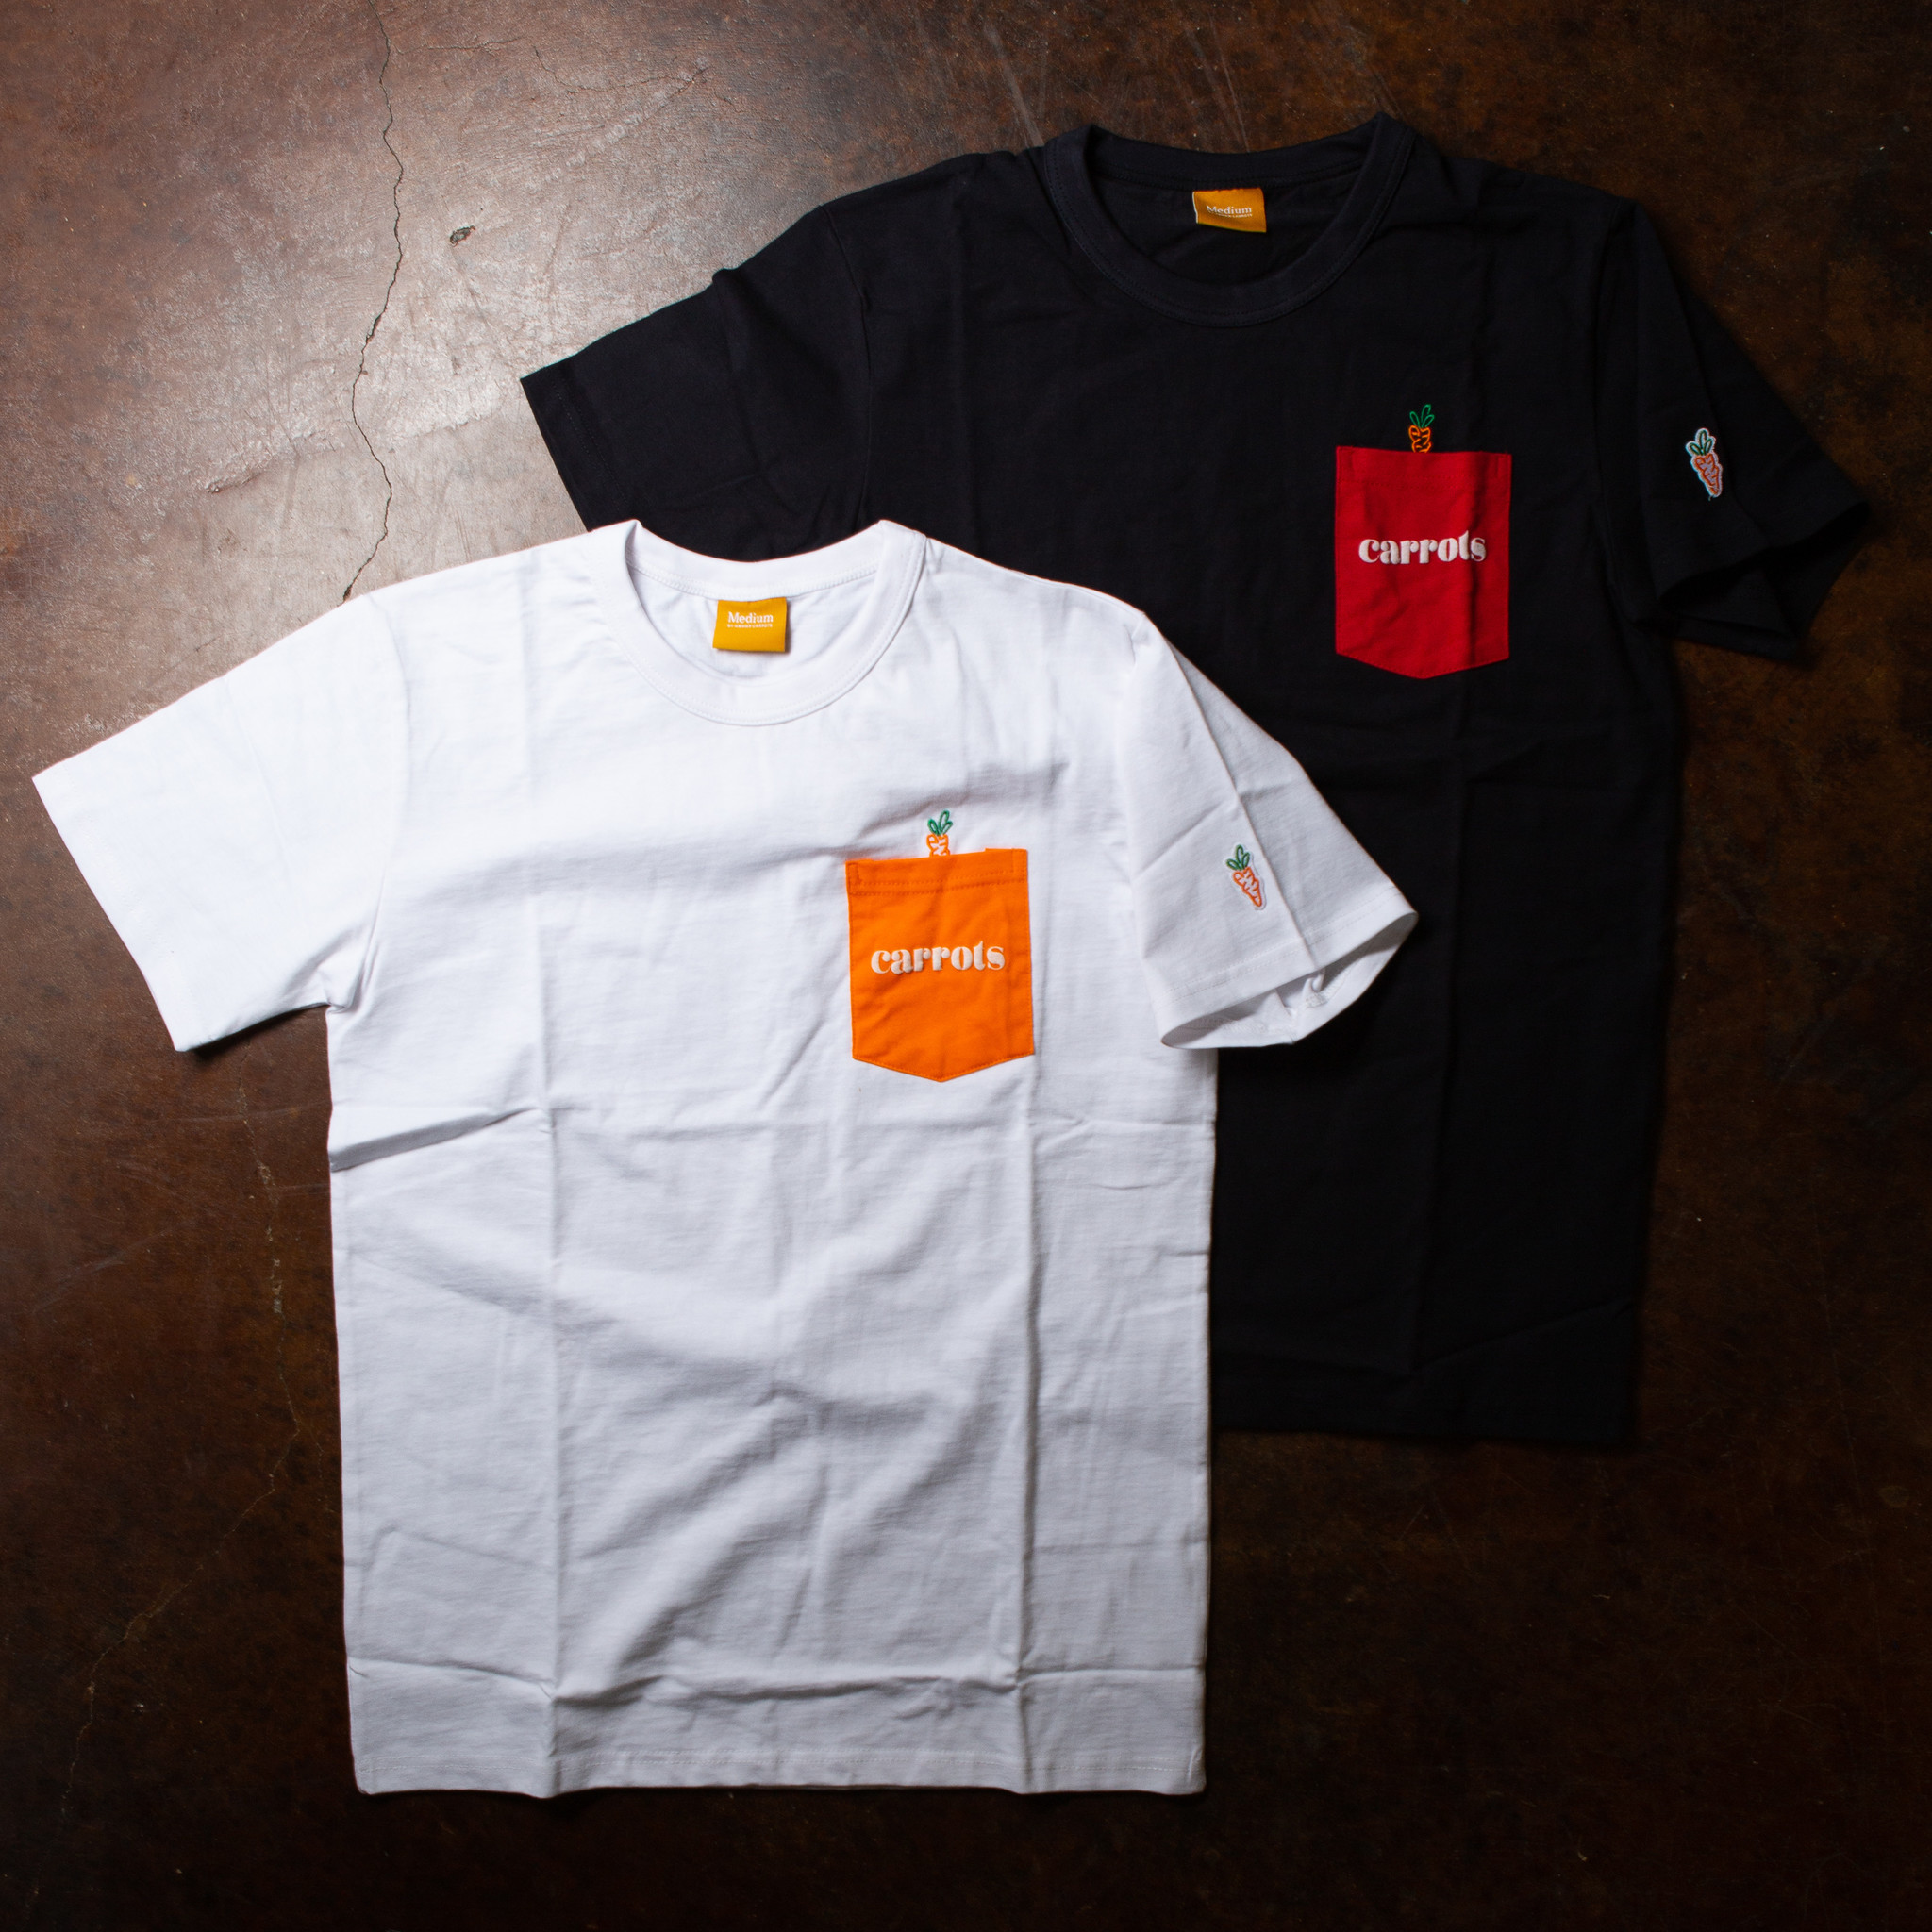 Carrots Carrots Pocket Tee